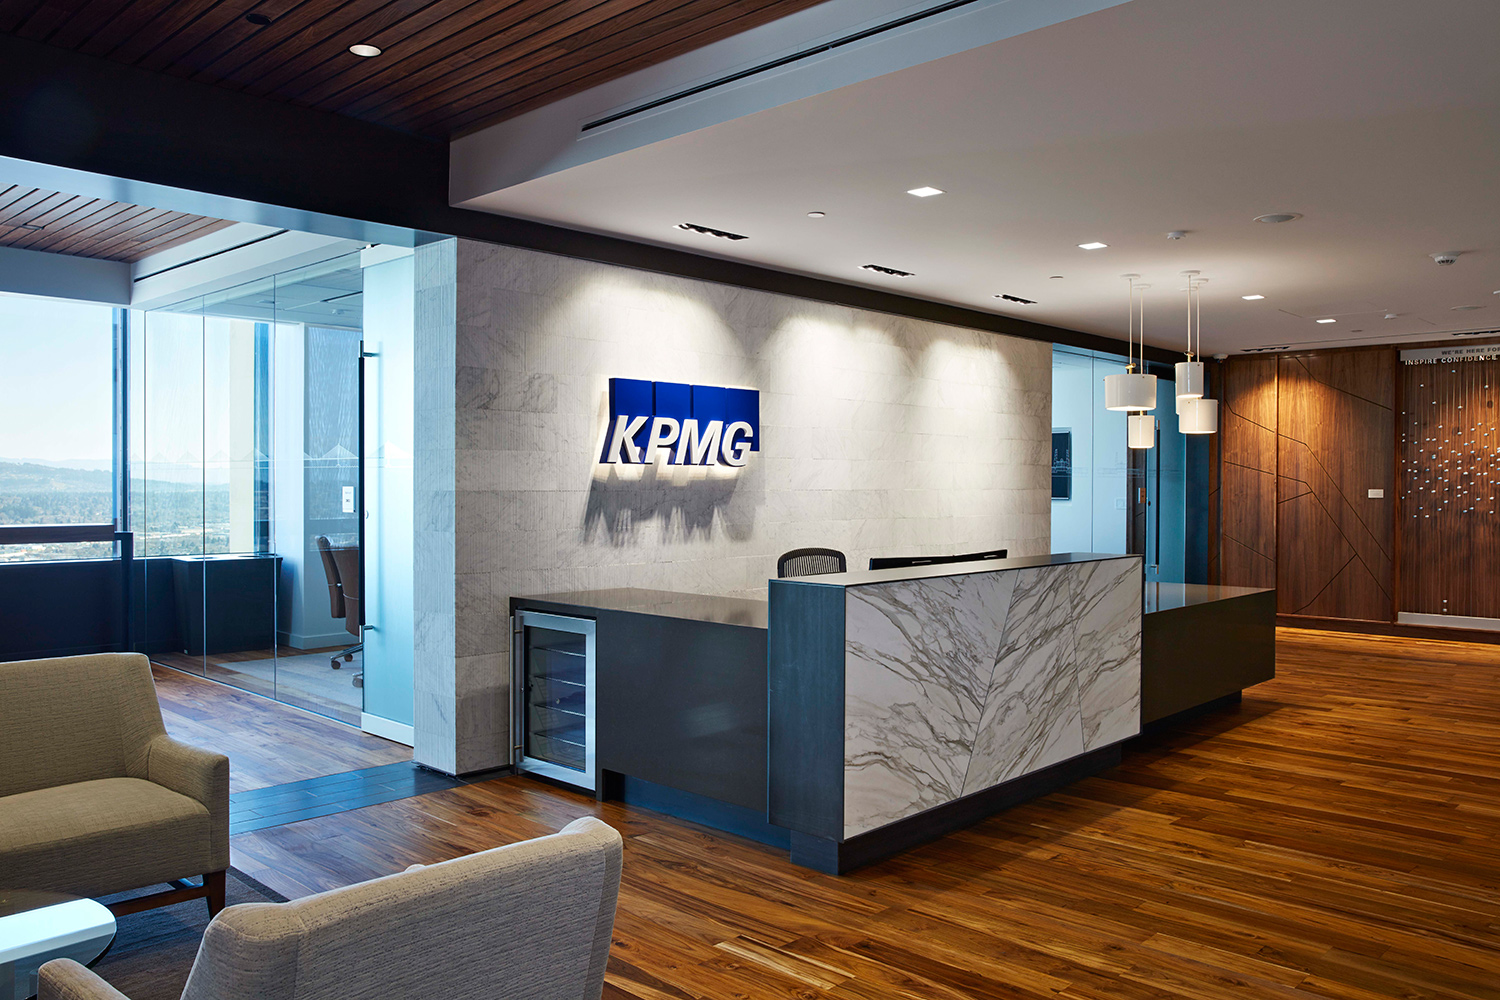 KPMG_Port_Reception02.jpg